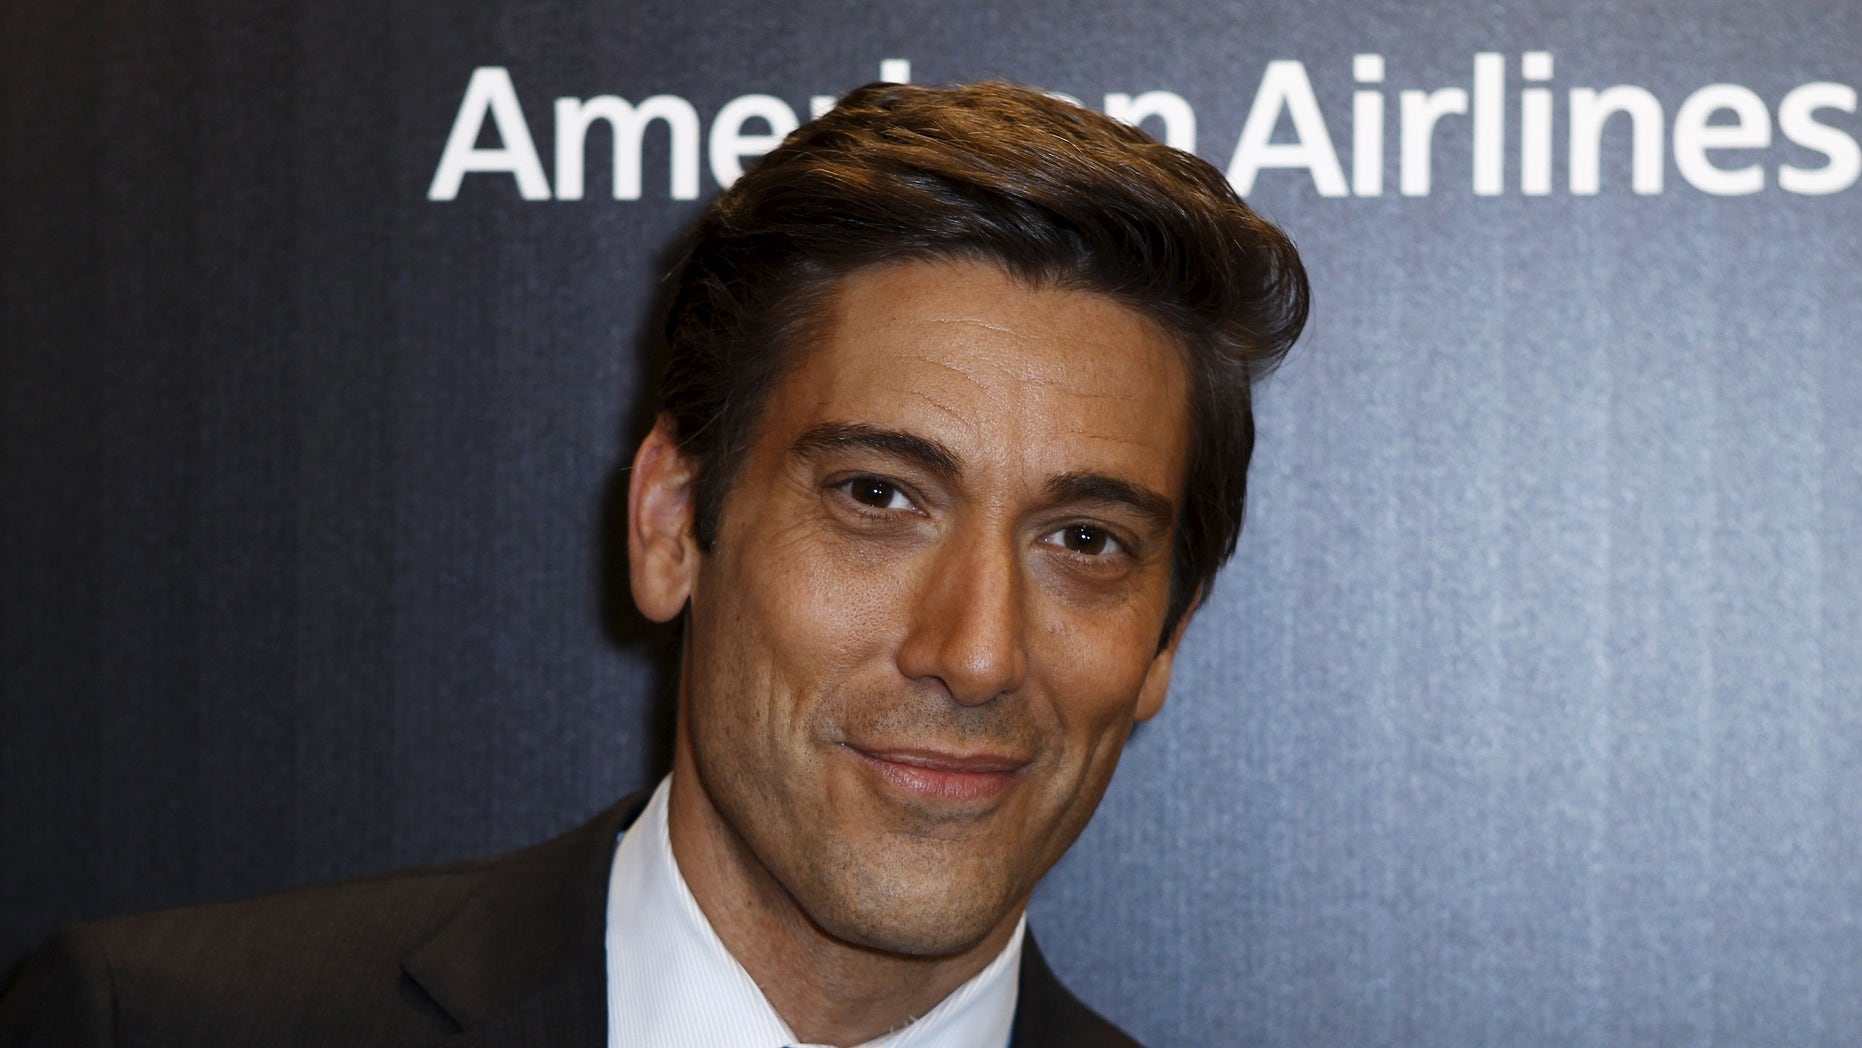 """News anchor David Muir attends """"The 35 Most Powerful People In Media"""" celebrated by The Hollywoood Reporter in New York April 8, 2015. REUTERS/Eduardo Munoz - RTR4WL8B"""